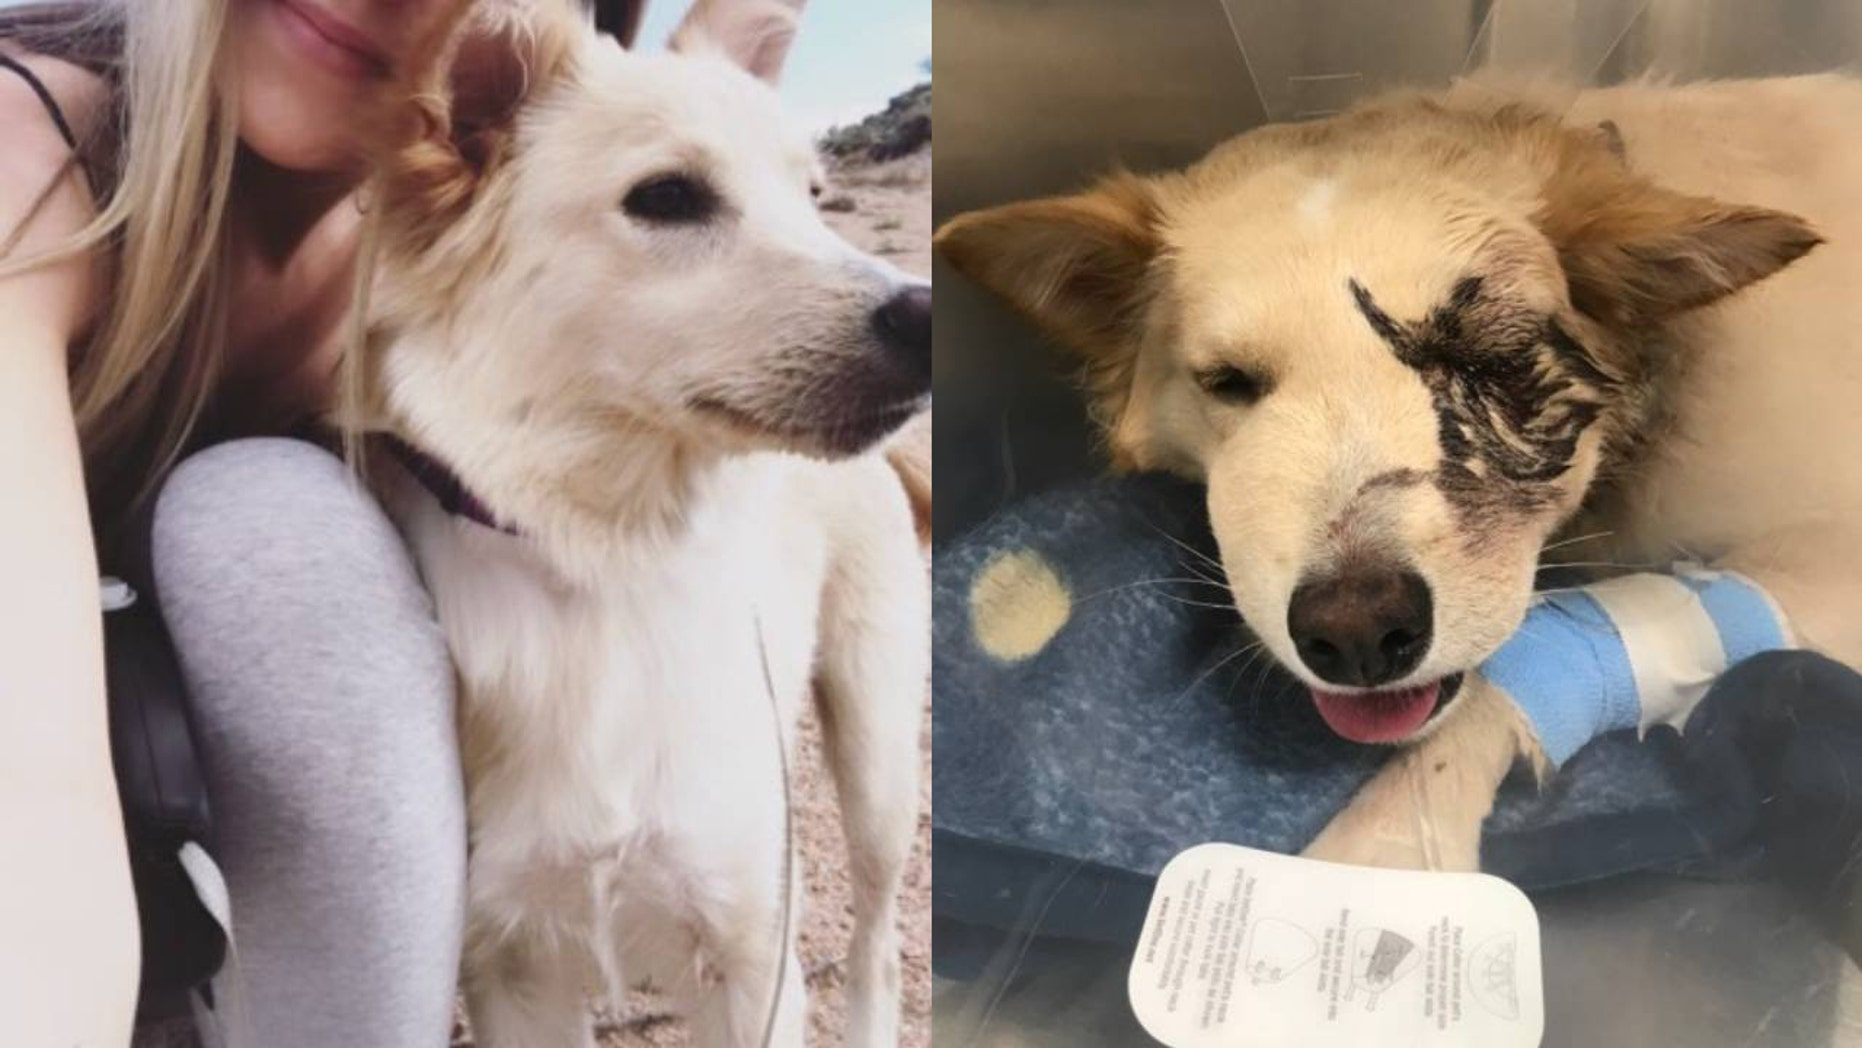 An Arizona woman has set up a GoFundMefor her beloved dog who now needs its eye removed after being attacked by a rattlesnake during a hike in the Superstition Mountains. (Nicole Hardenbrook)